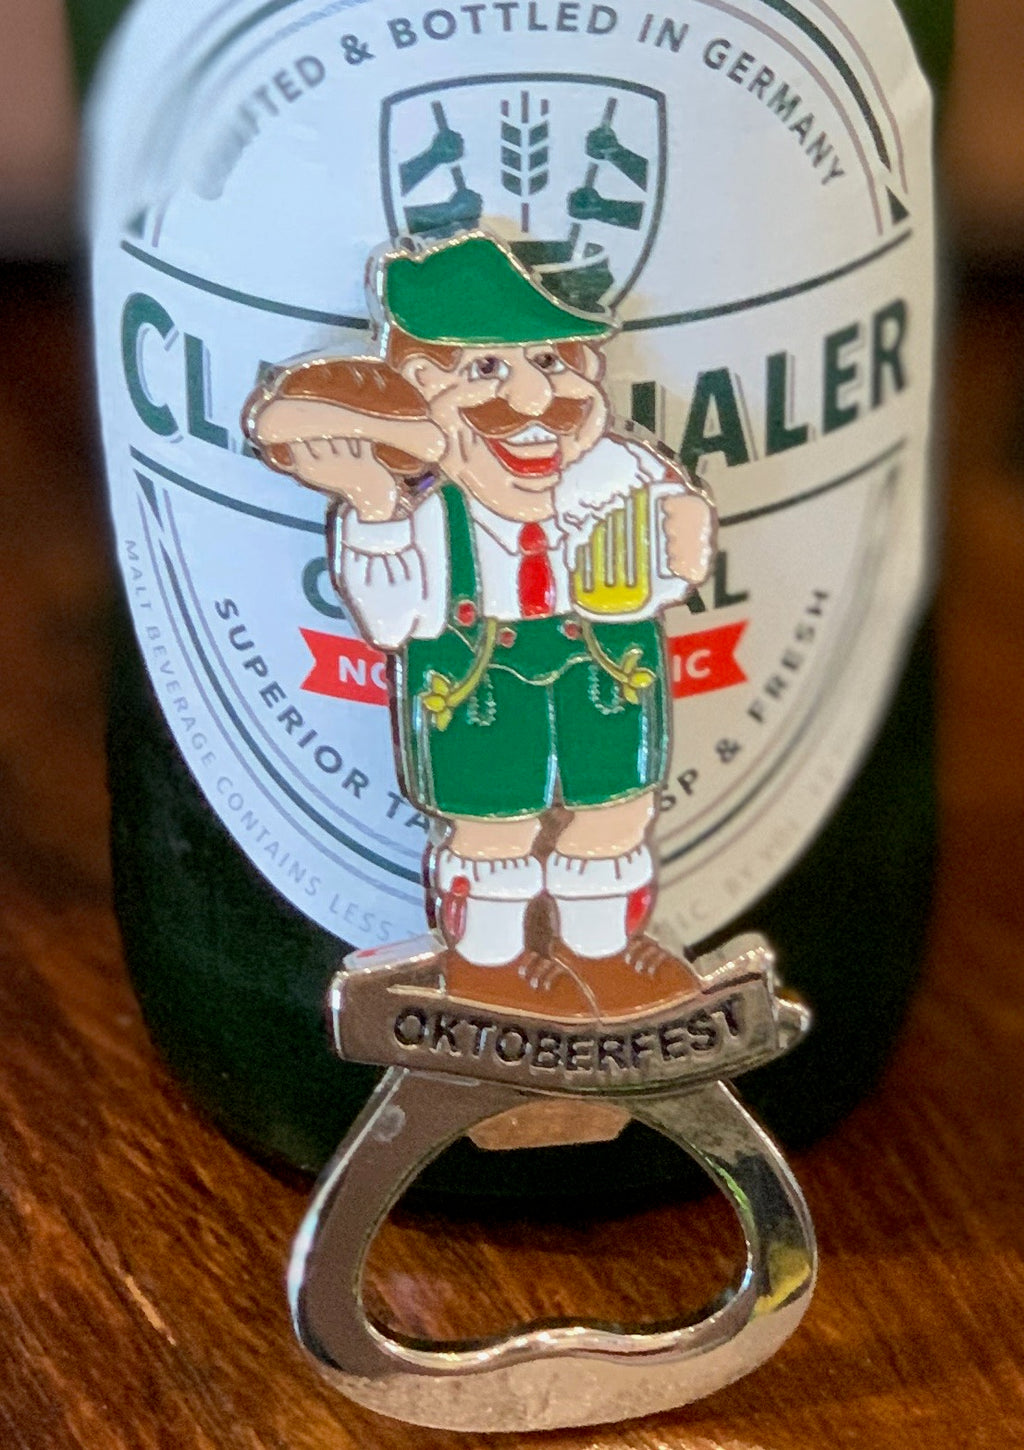 Oktoberfest Beer bottle Opener